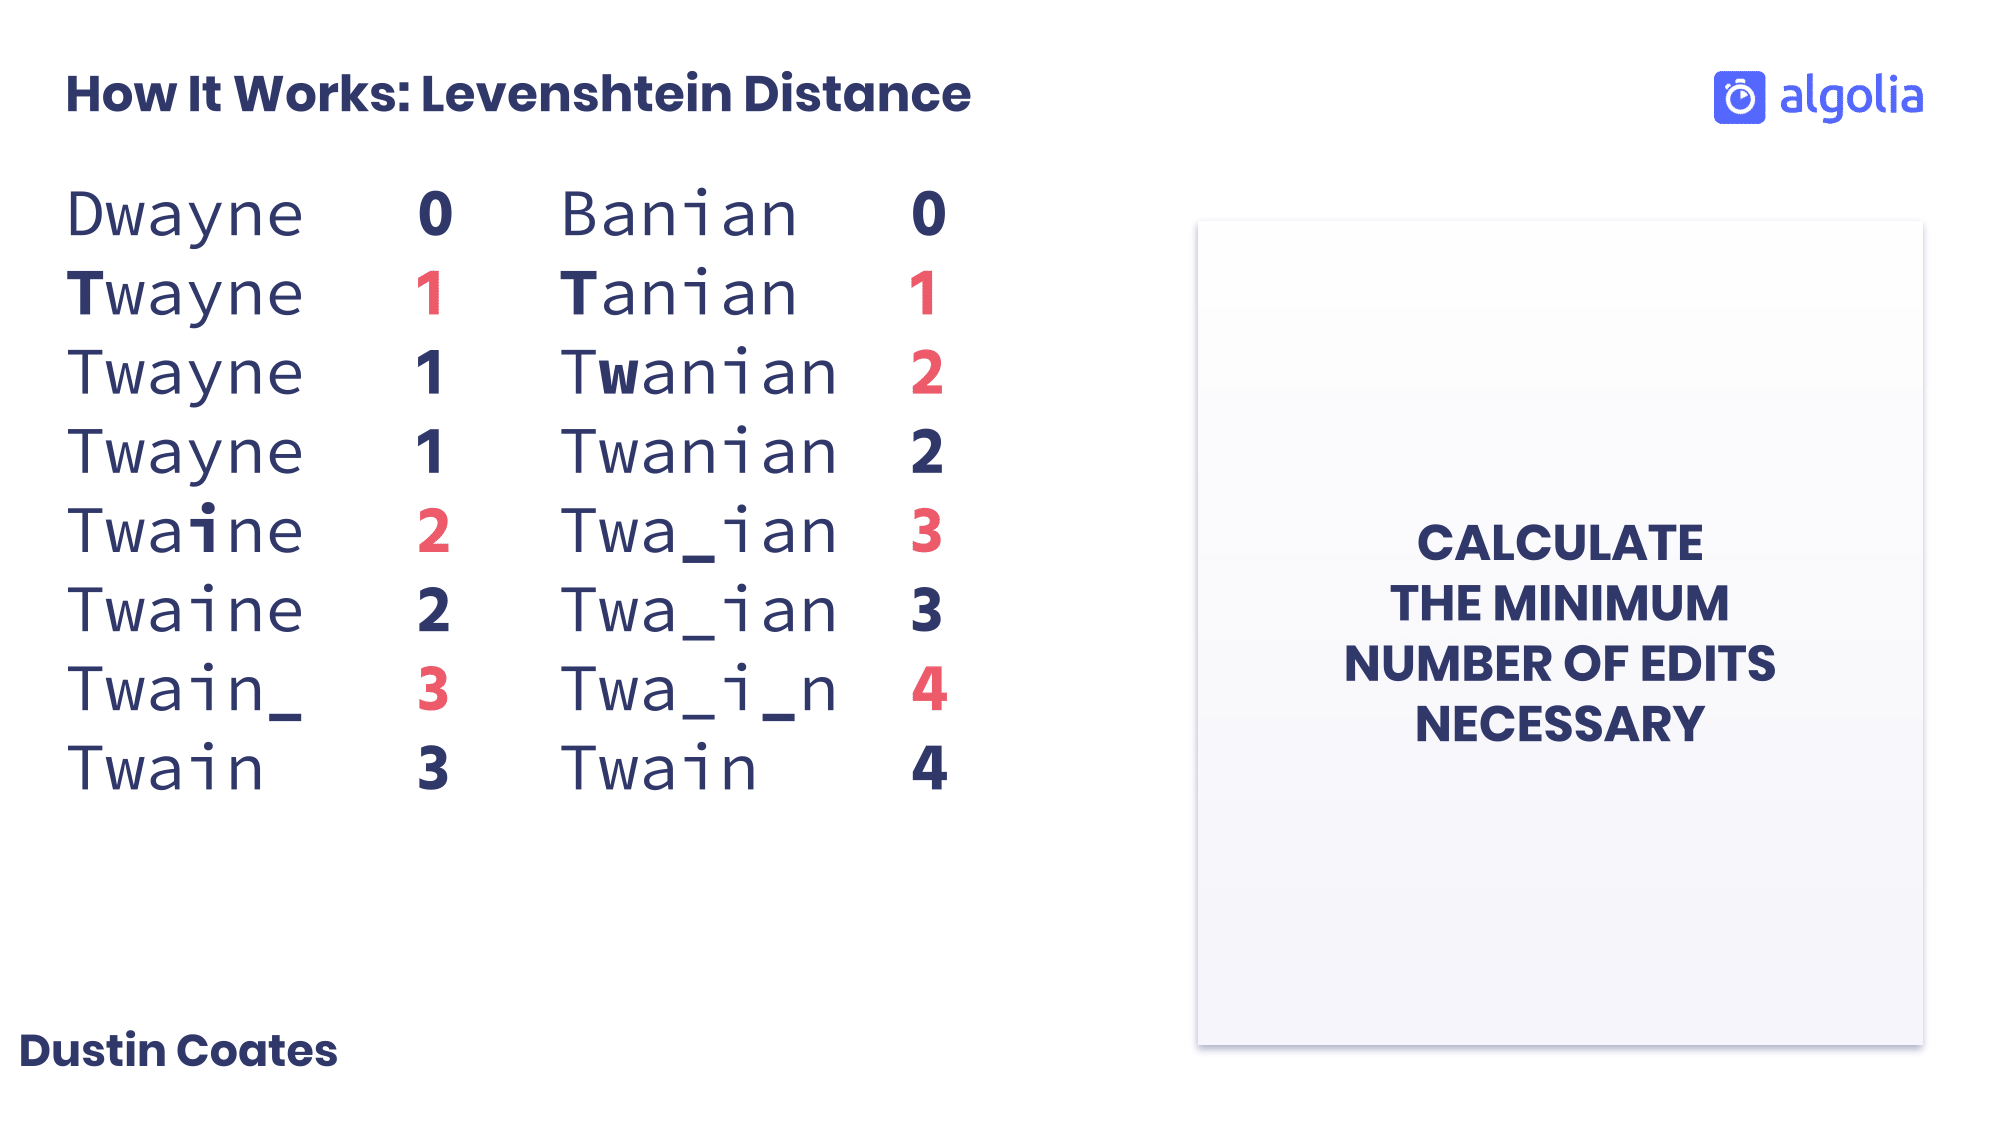 How the levenshtein distance works